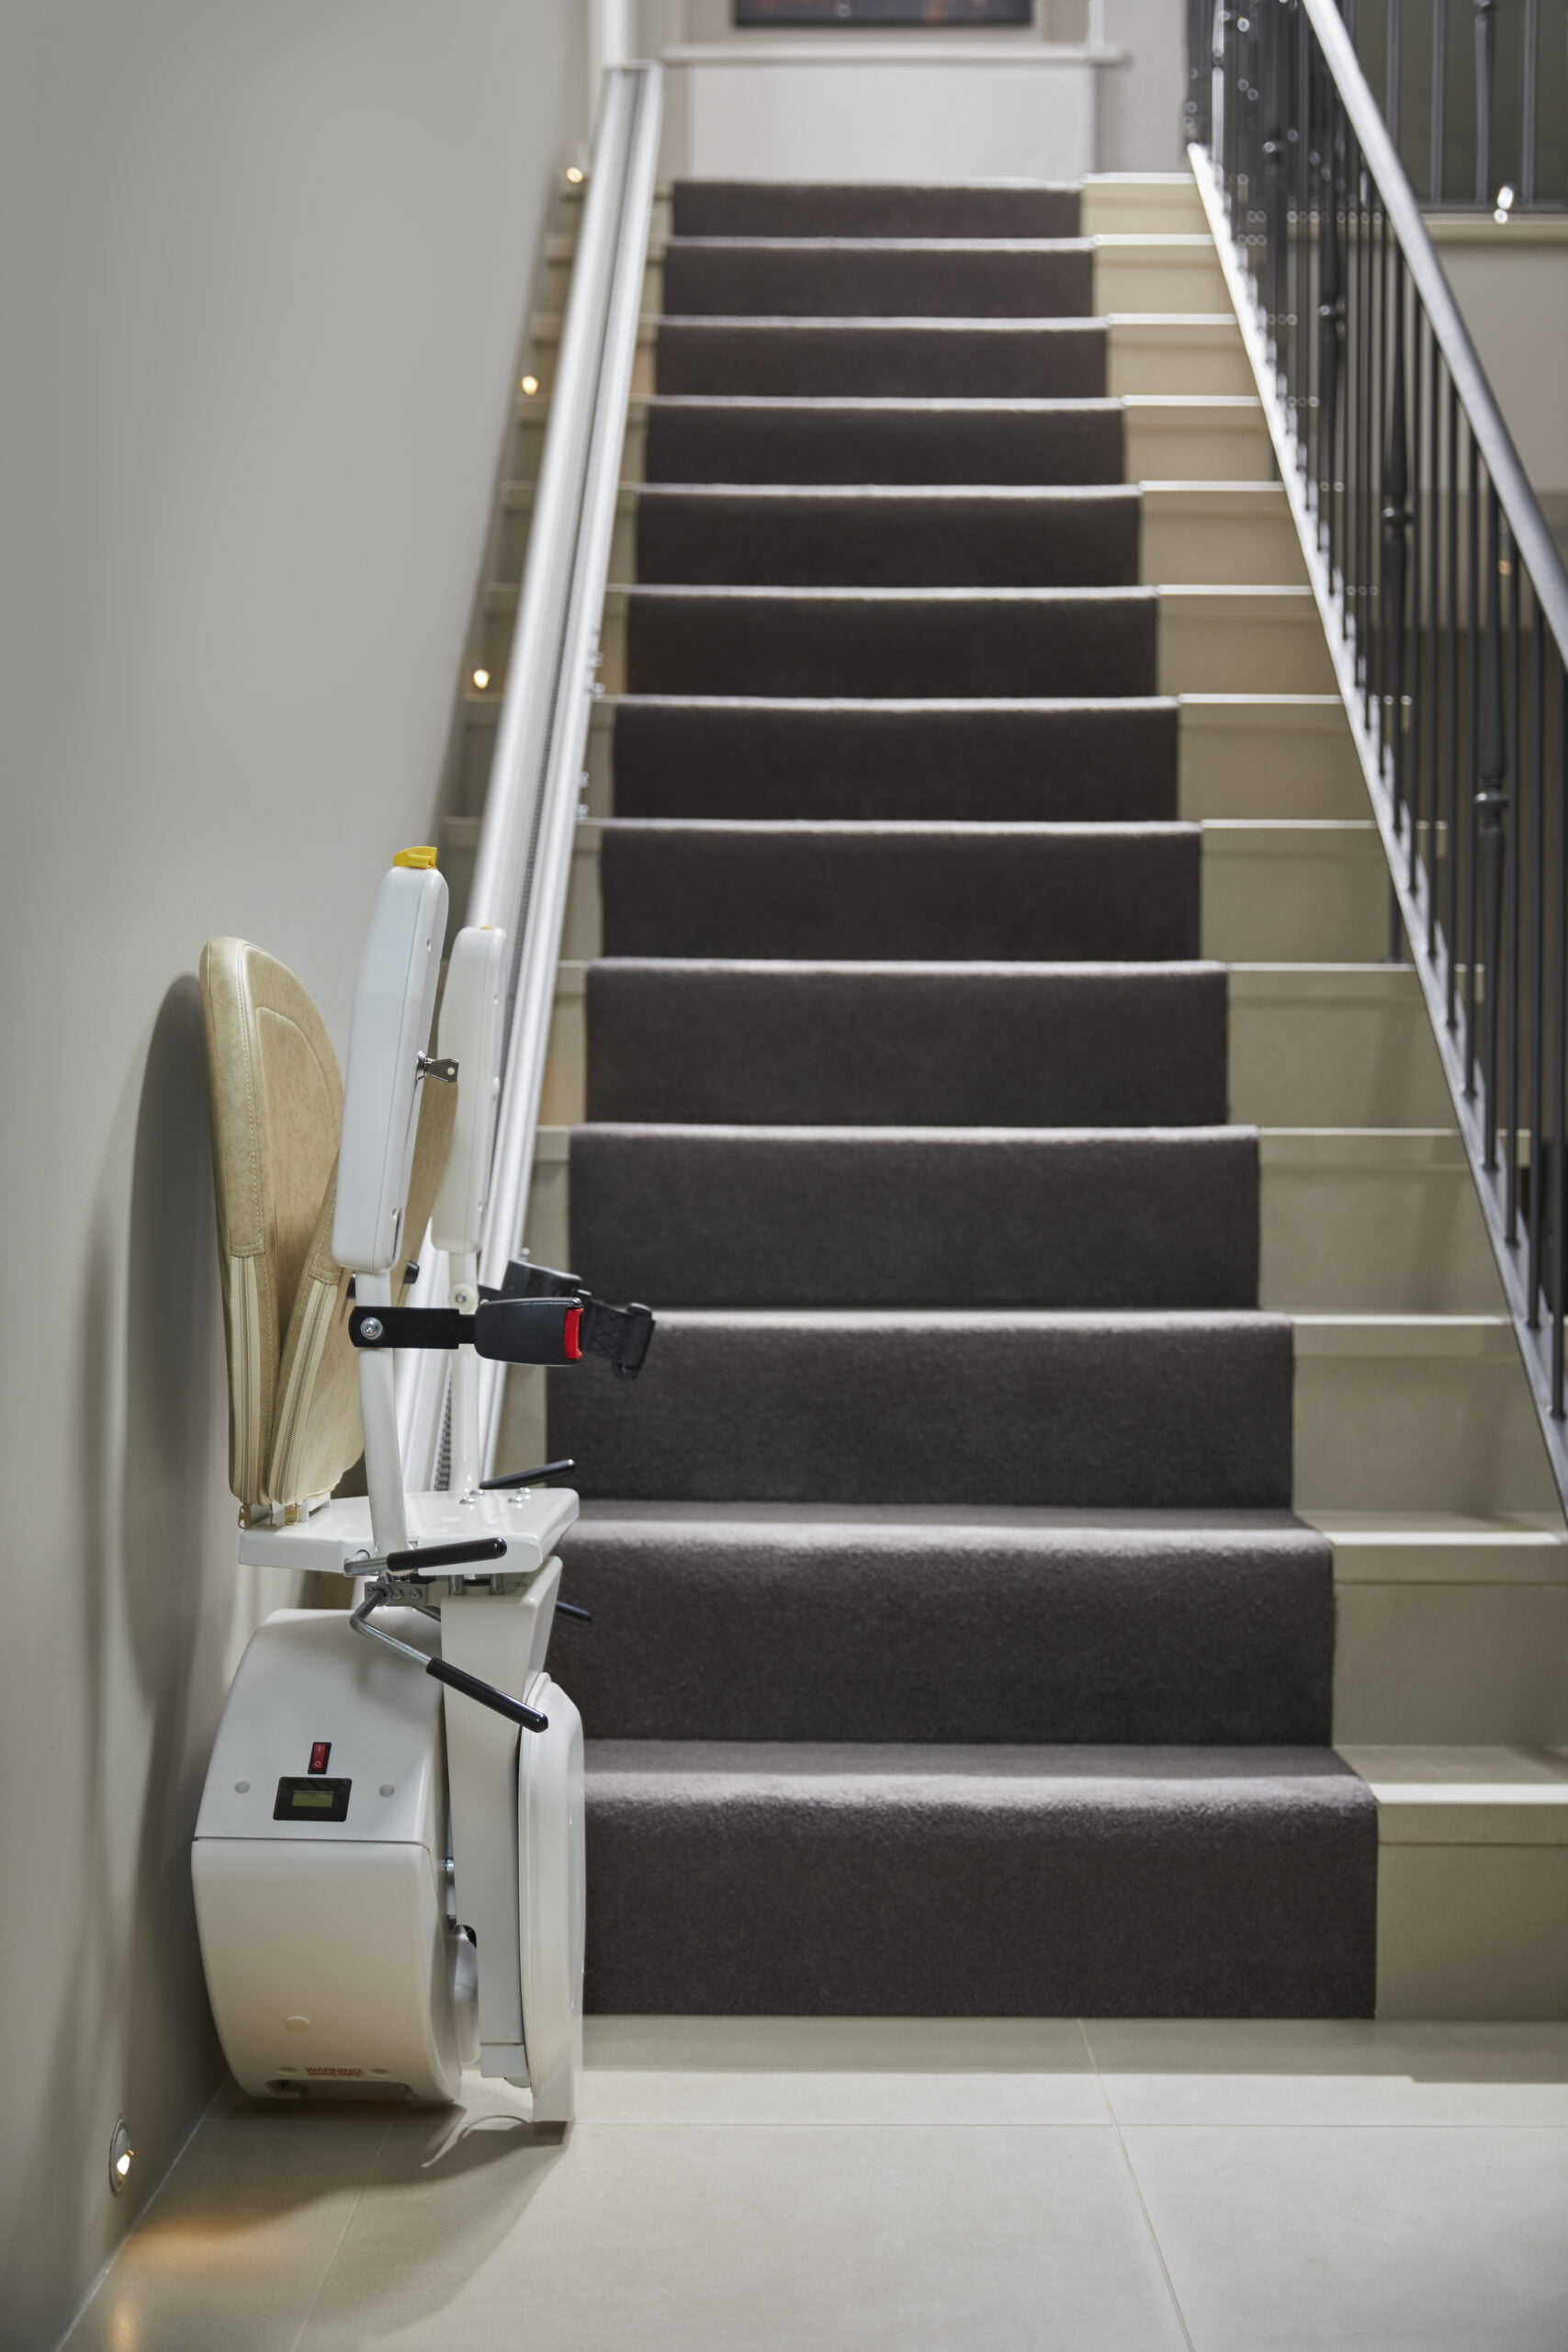 Straight Stairlifts | Stairlifts Bradford | Halton Stairlifts